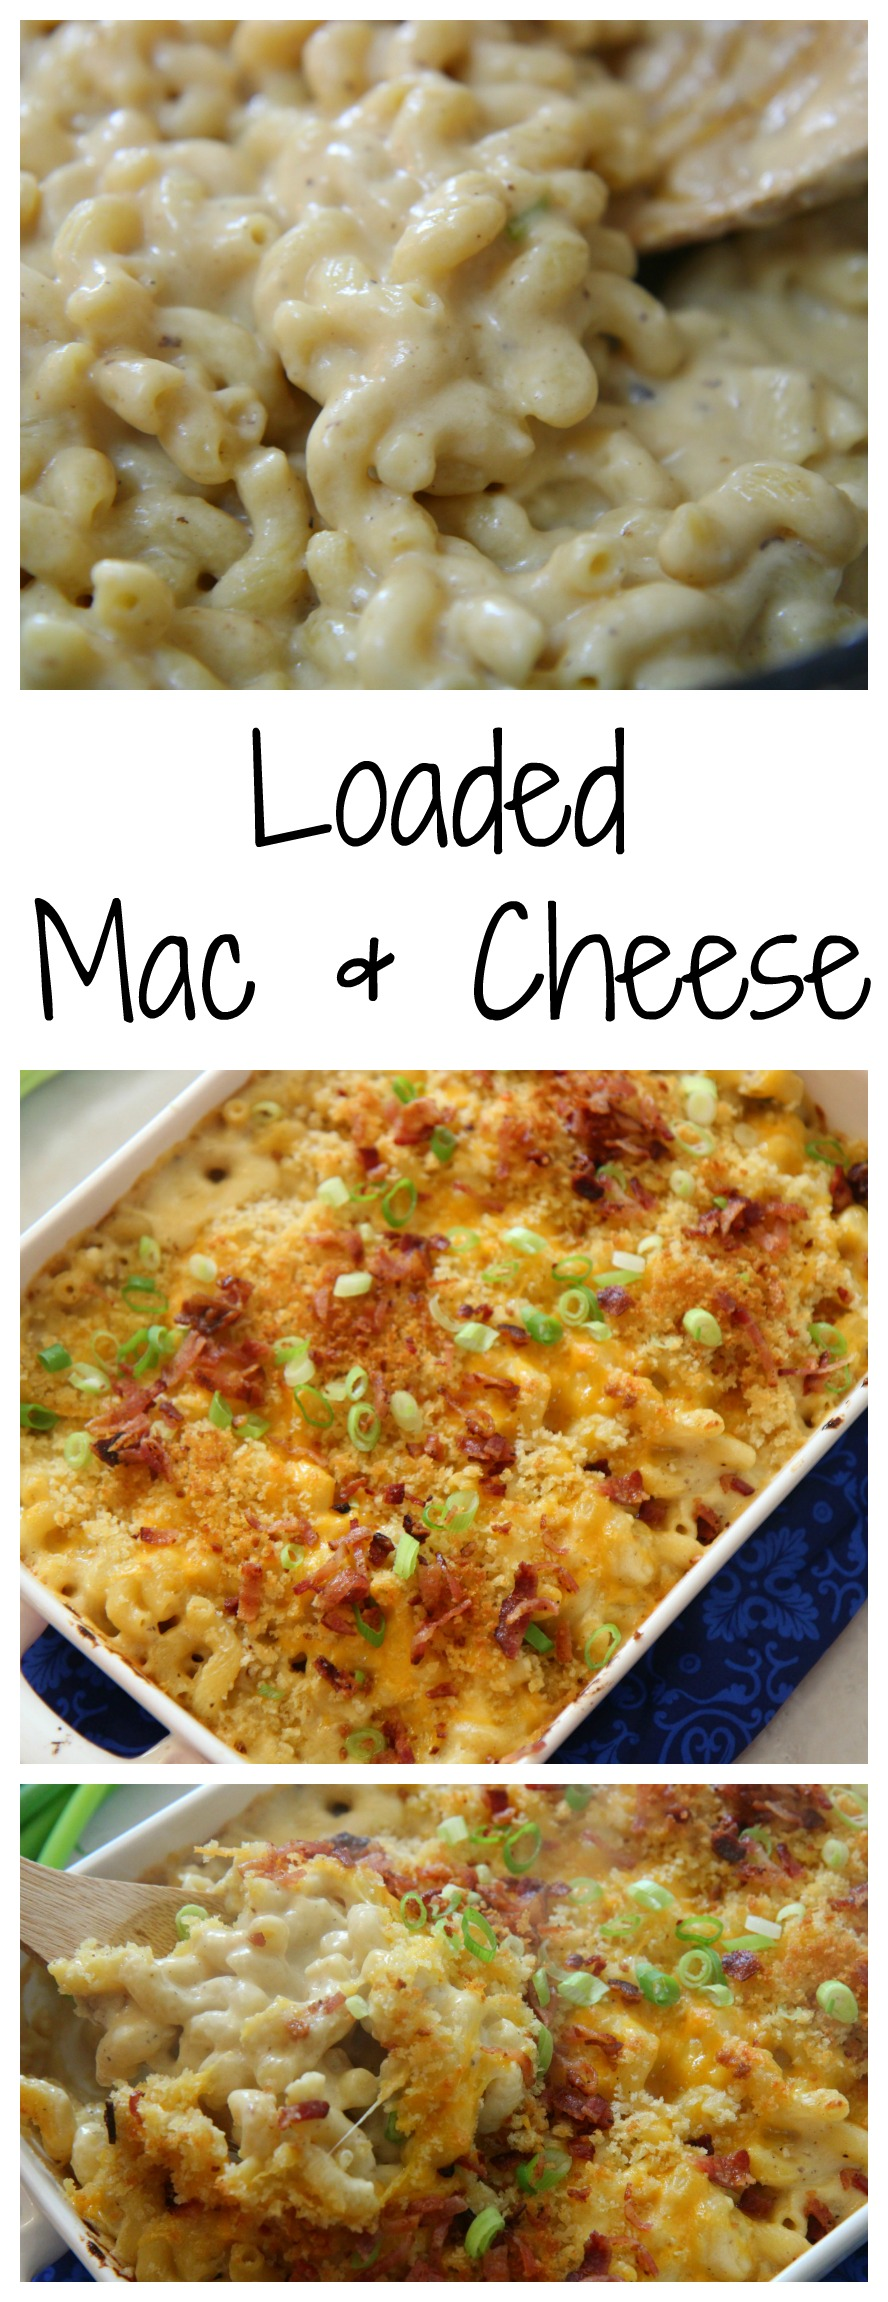 Learn how to make this loaded Mac & Cheese at CookedbyJulie.com